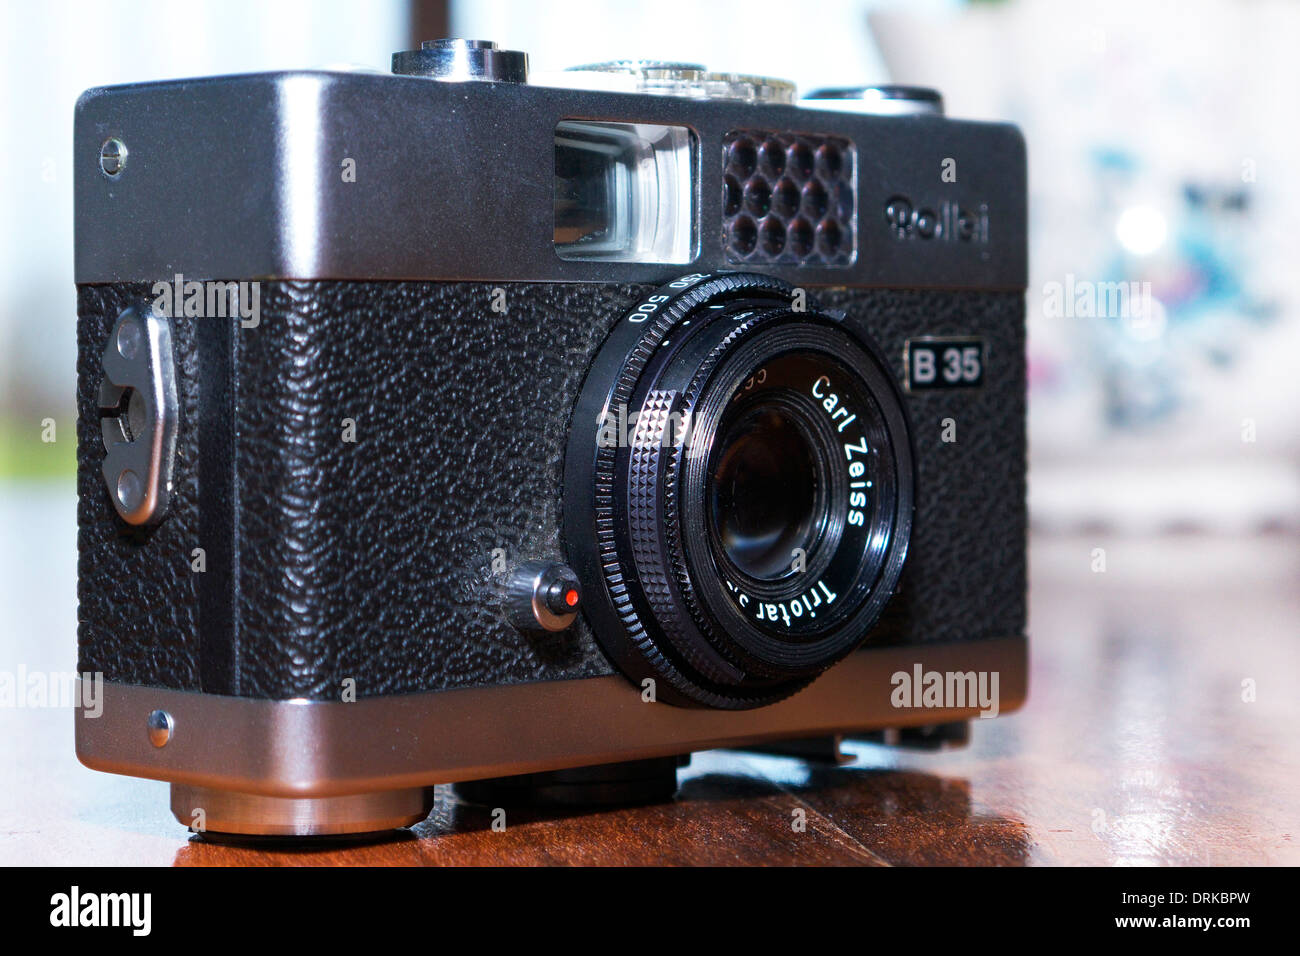 A Rollei B35 compact 35mm camera with Carl Zeiss Triotar lens. Stock Photo